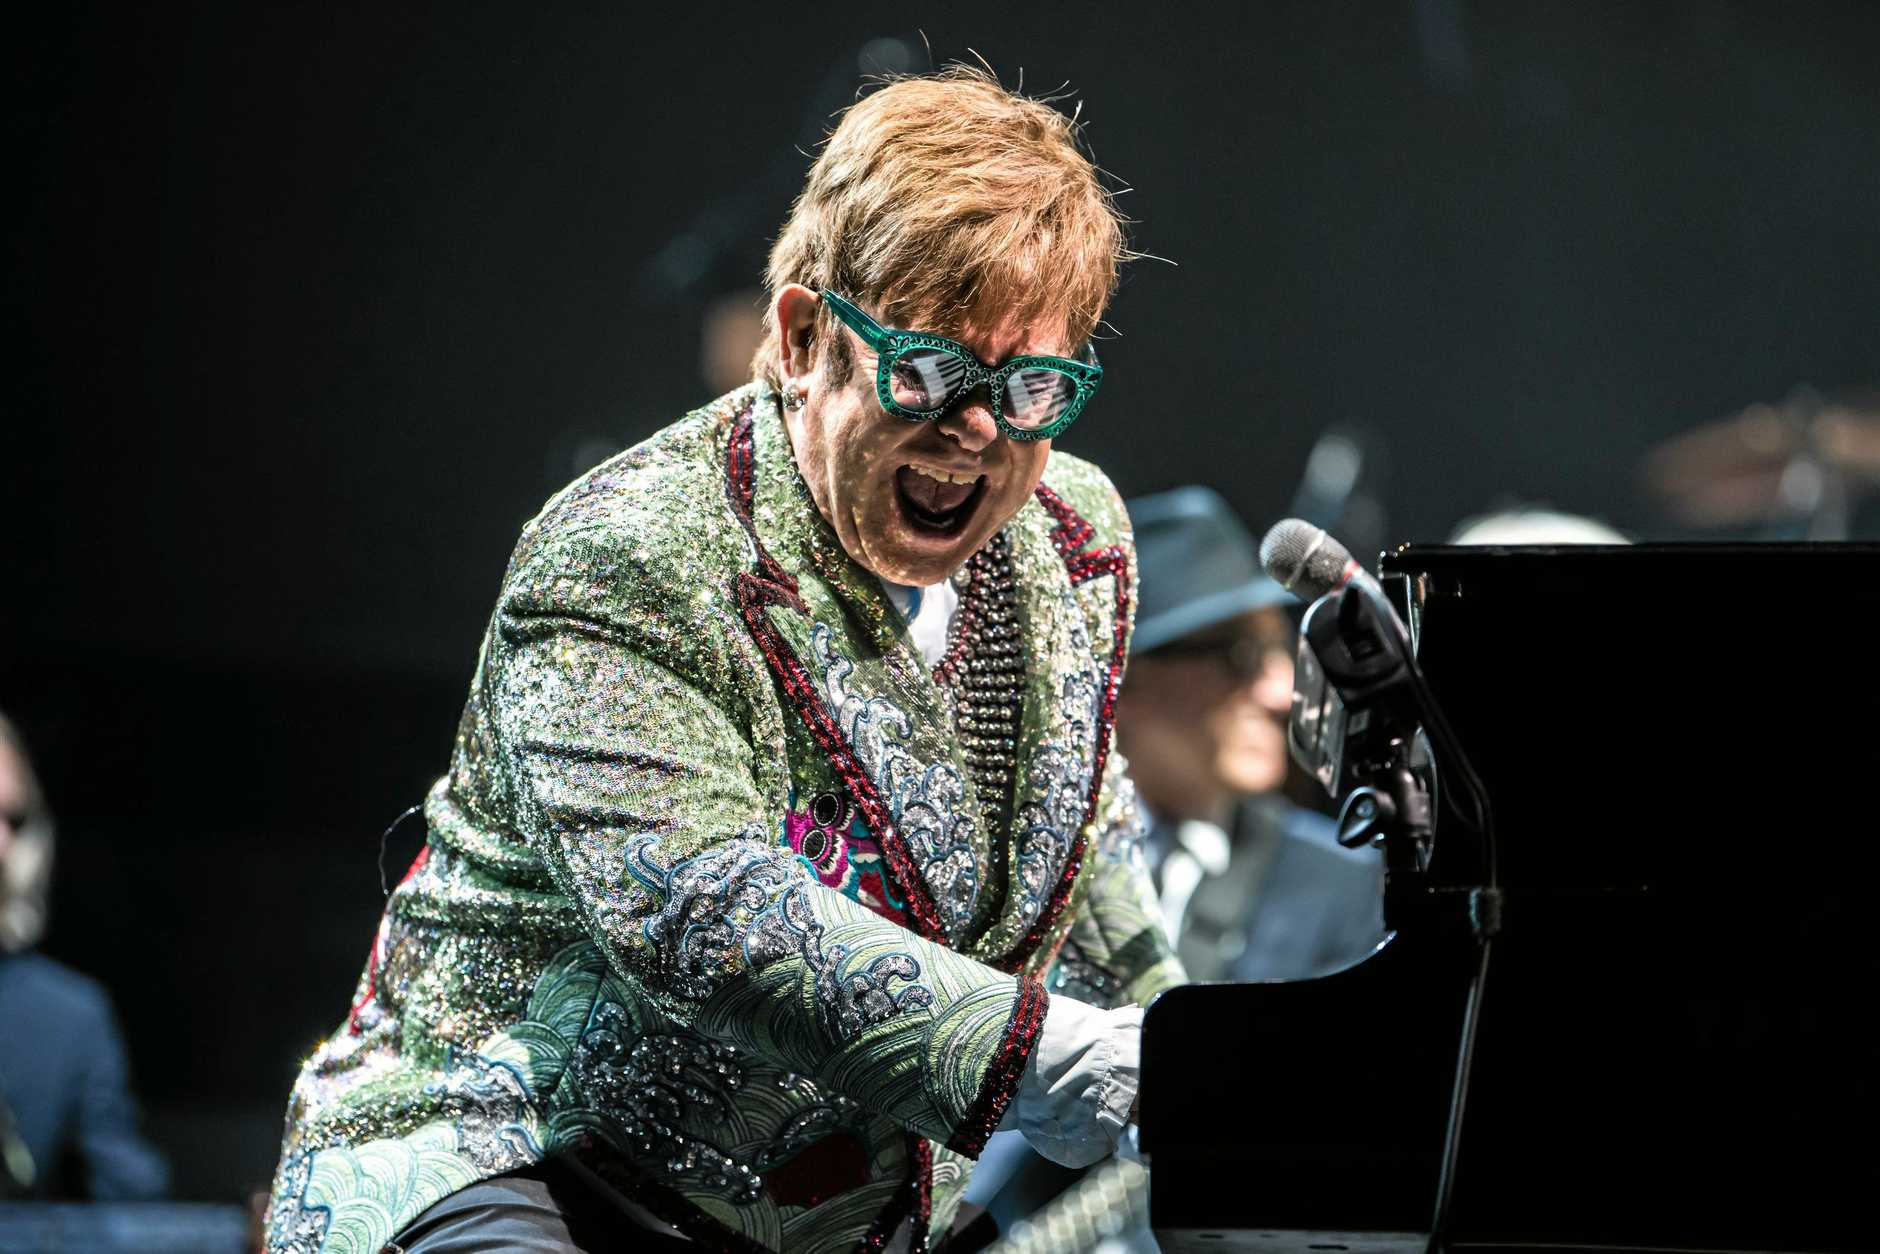 Elton John has extended his Farewell Yellow Brick Road tour for what's expected to be a sell-out show at the Sunshine Coast Stadium.